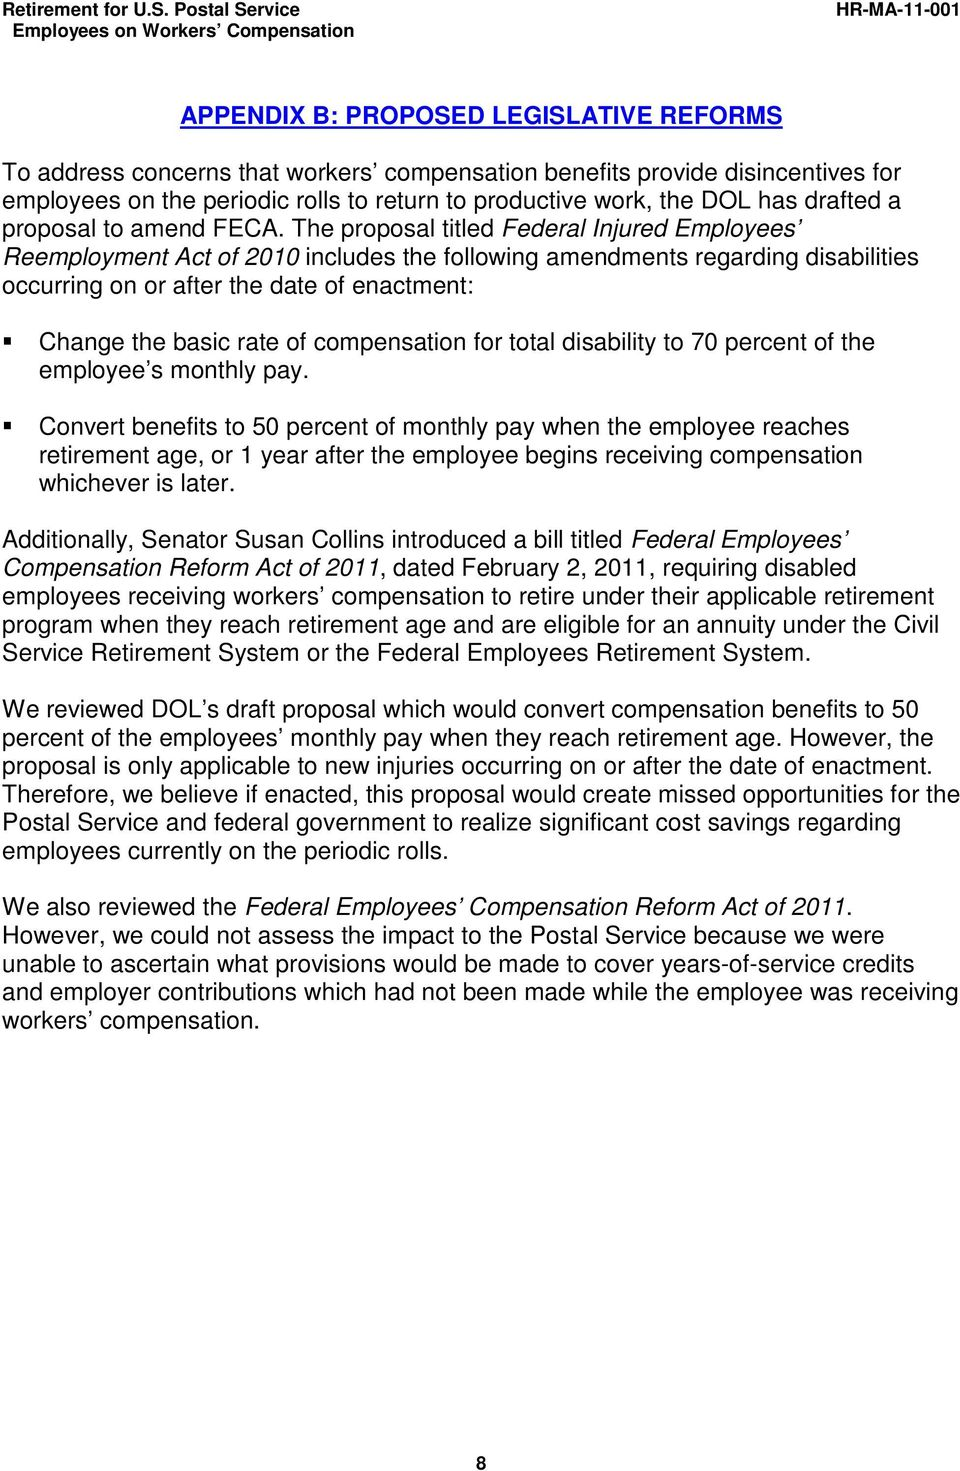 The proposal titled Federal Injured Employees Reemployment Act of 2010 includes the following amendments regarding disabilities occurring on or after the date of enactment: Change the basic rate of